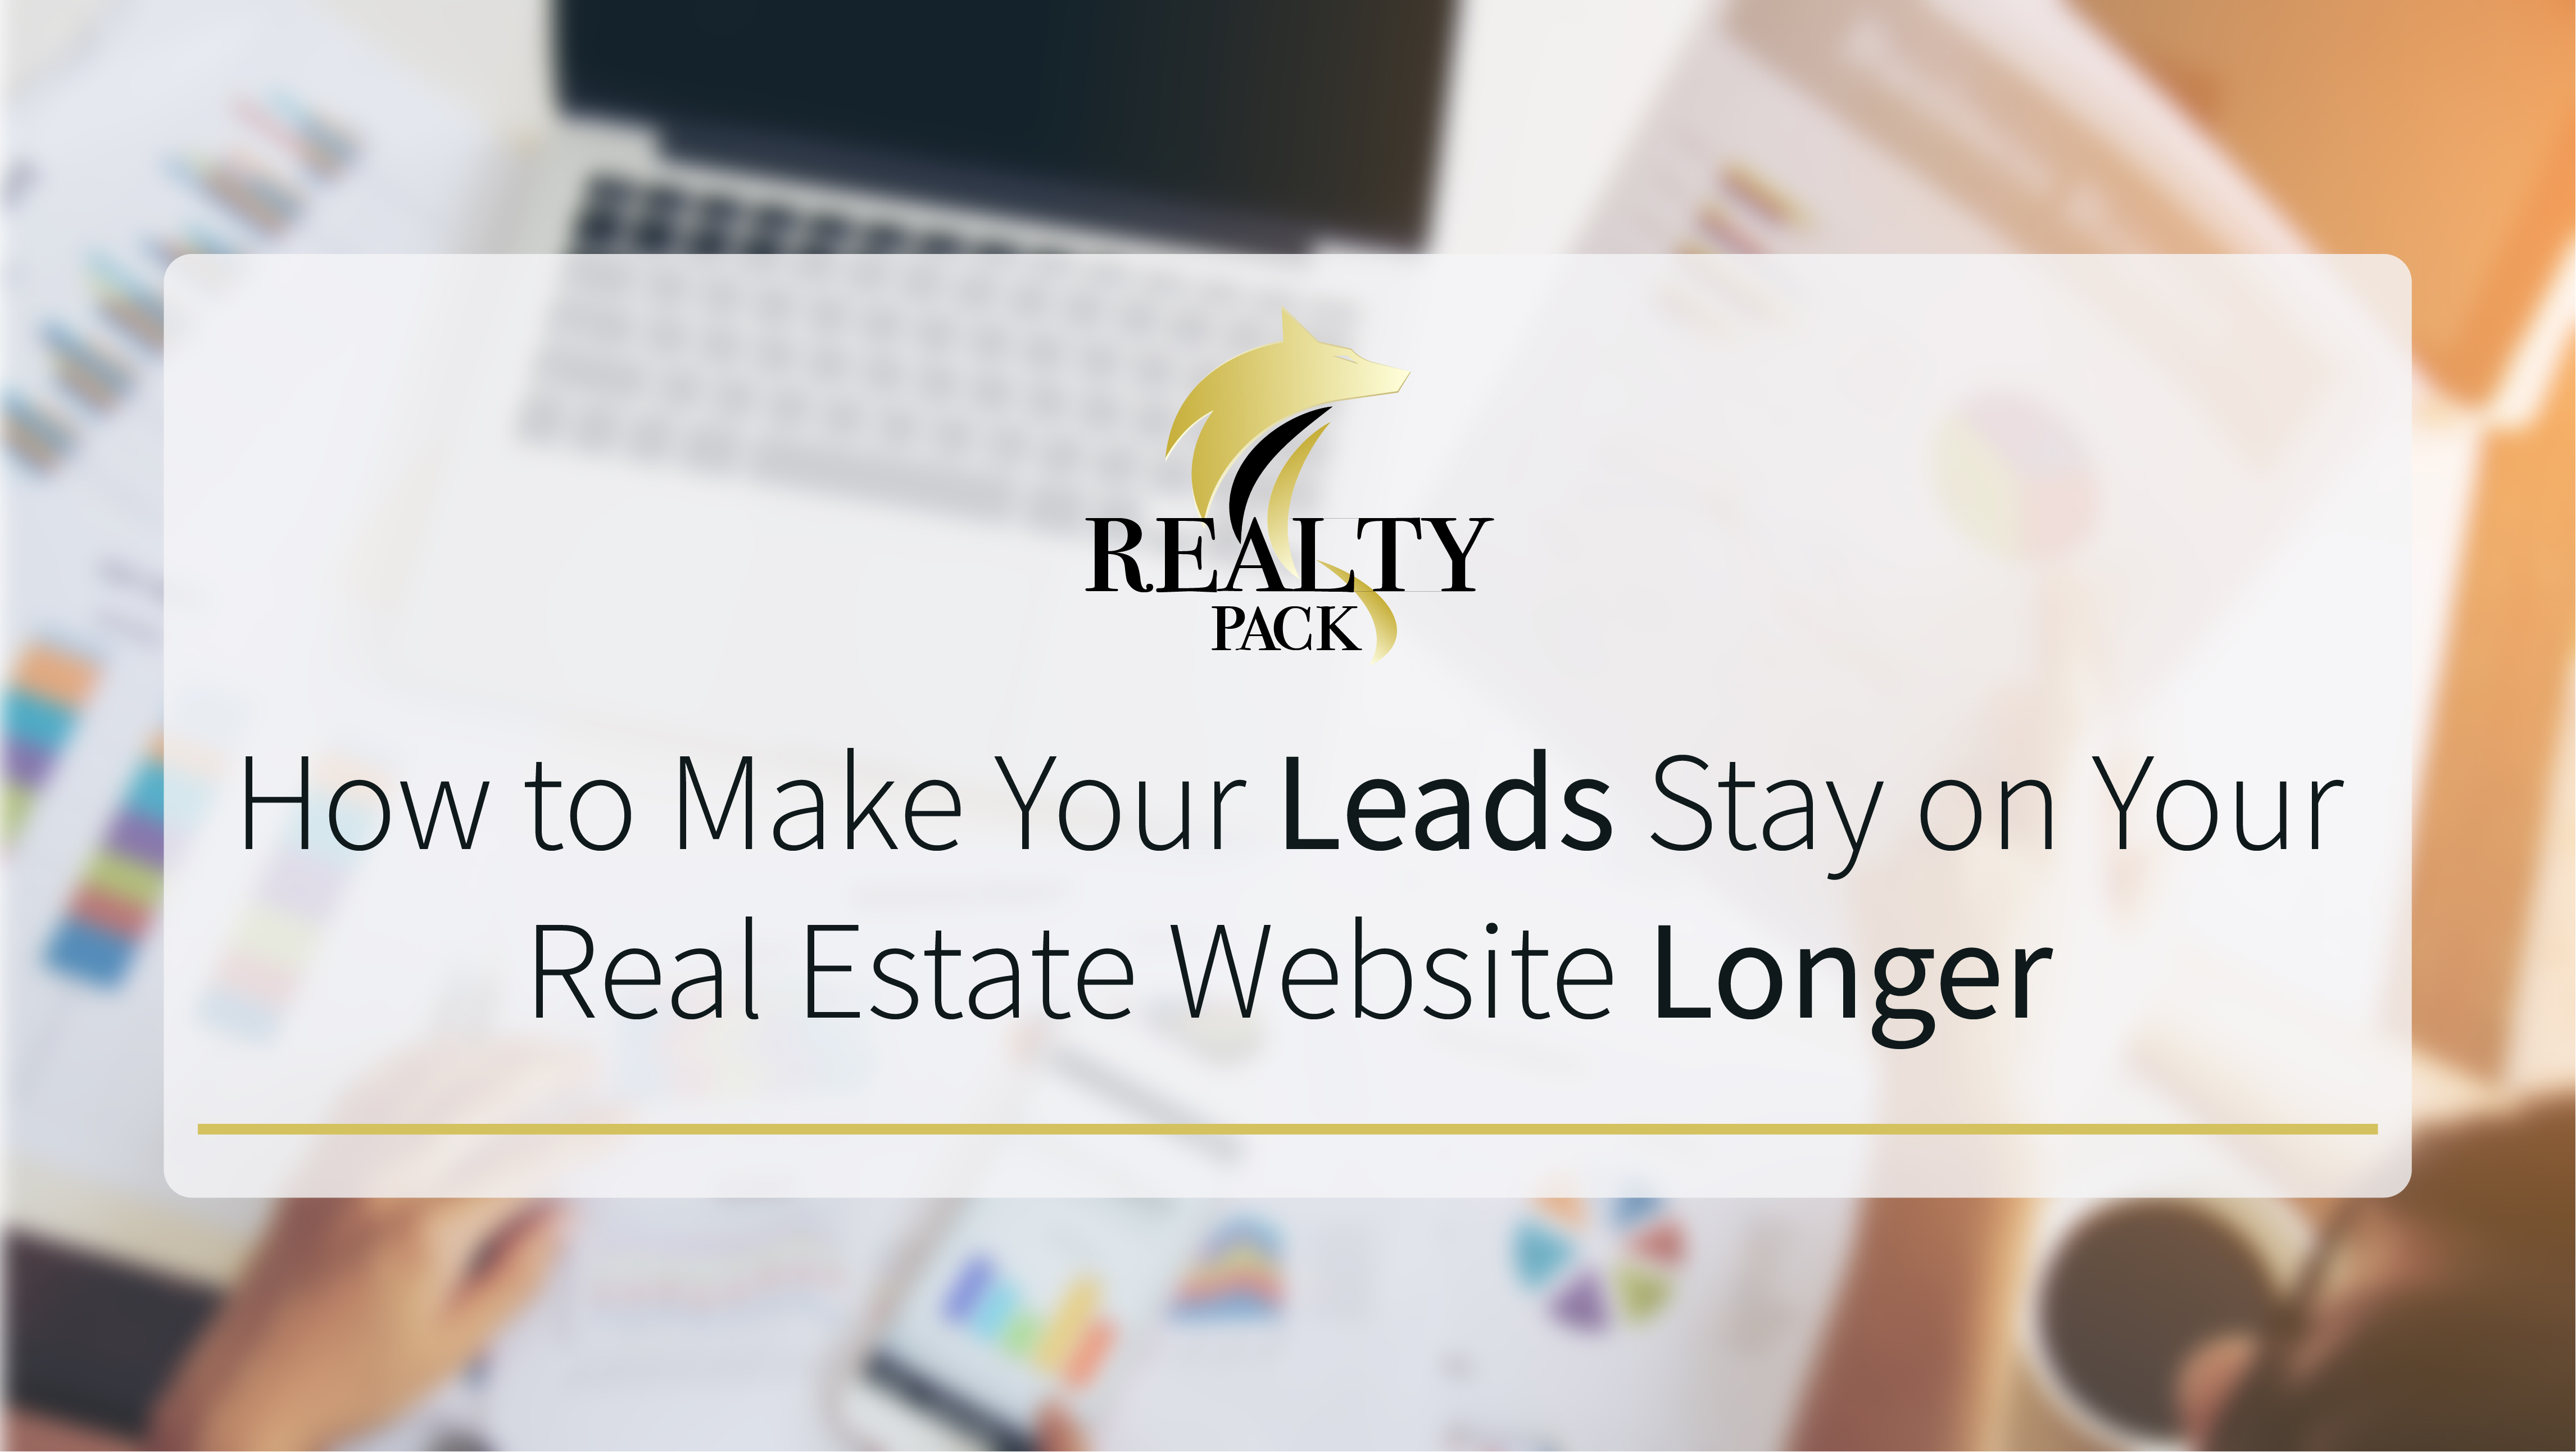 making leads stay on your real estate website longer